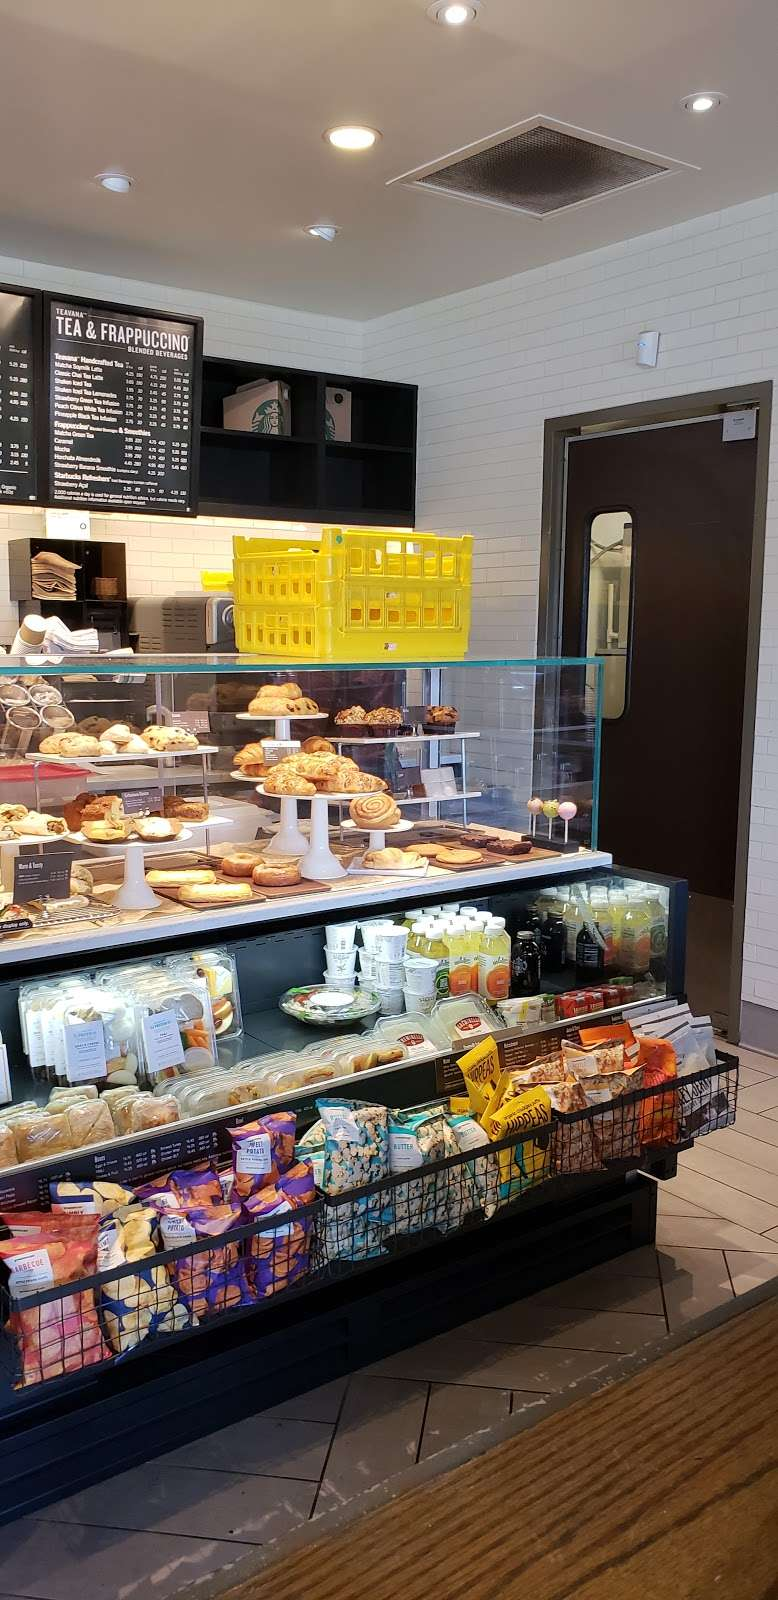 Starbucks - cafe  | Photo 10 of 10 | Address: 3613 N Main St, Stafford, TX 77477, USA | Phone: (281) 840-1163